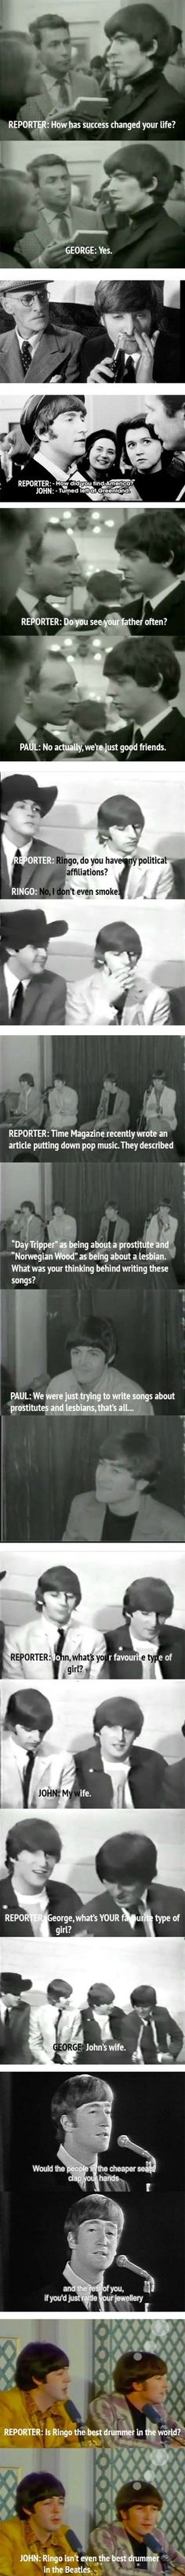 The Beatles were HILARIOUS.